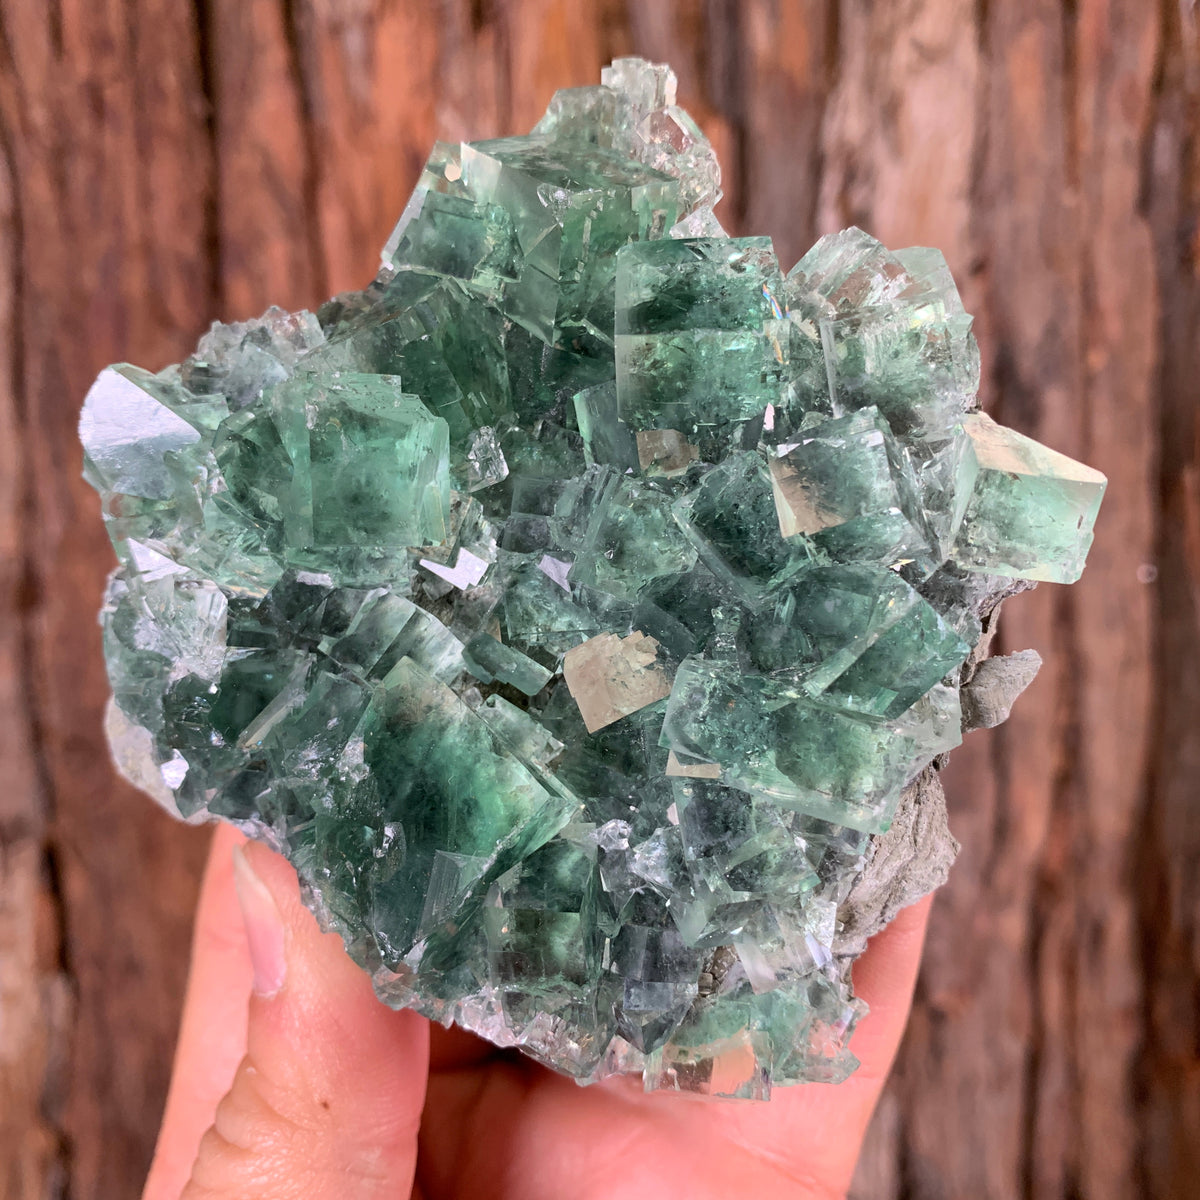 10cm 316g Clear Green Fluorite from Xianghualing Mine, China